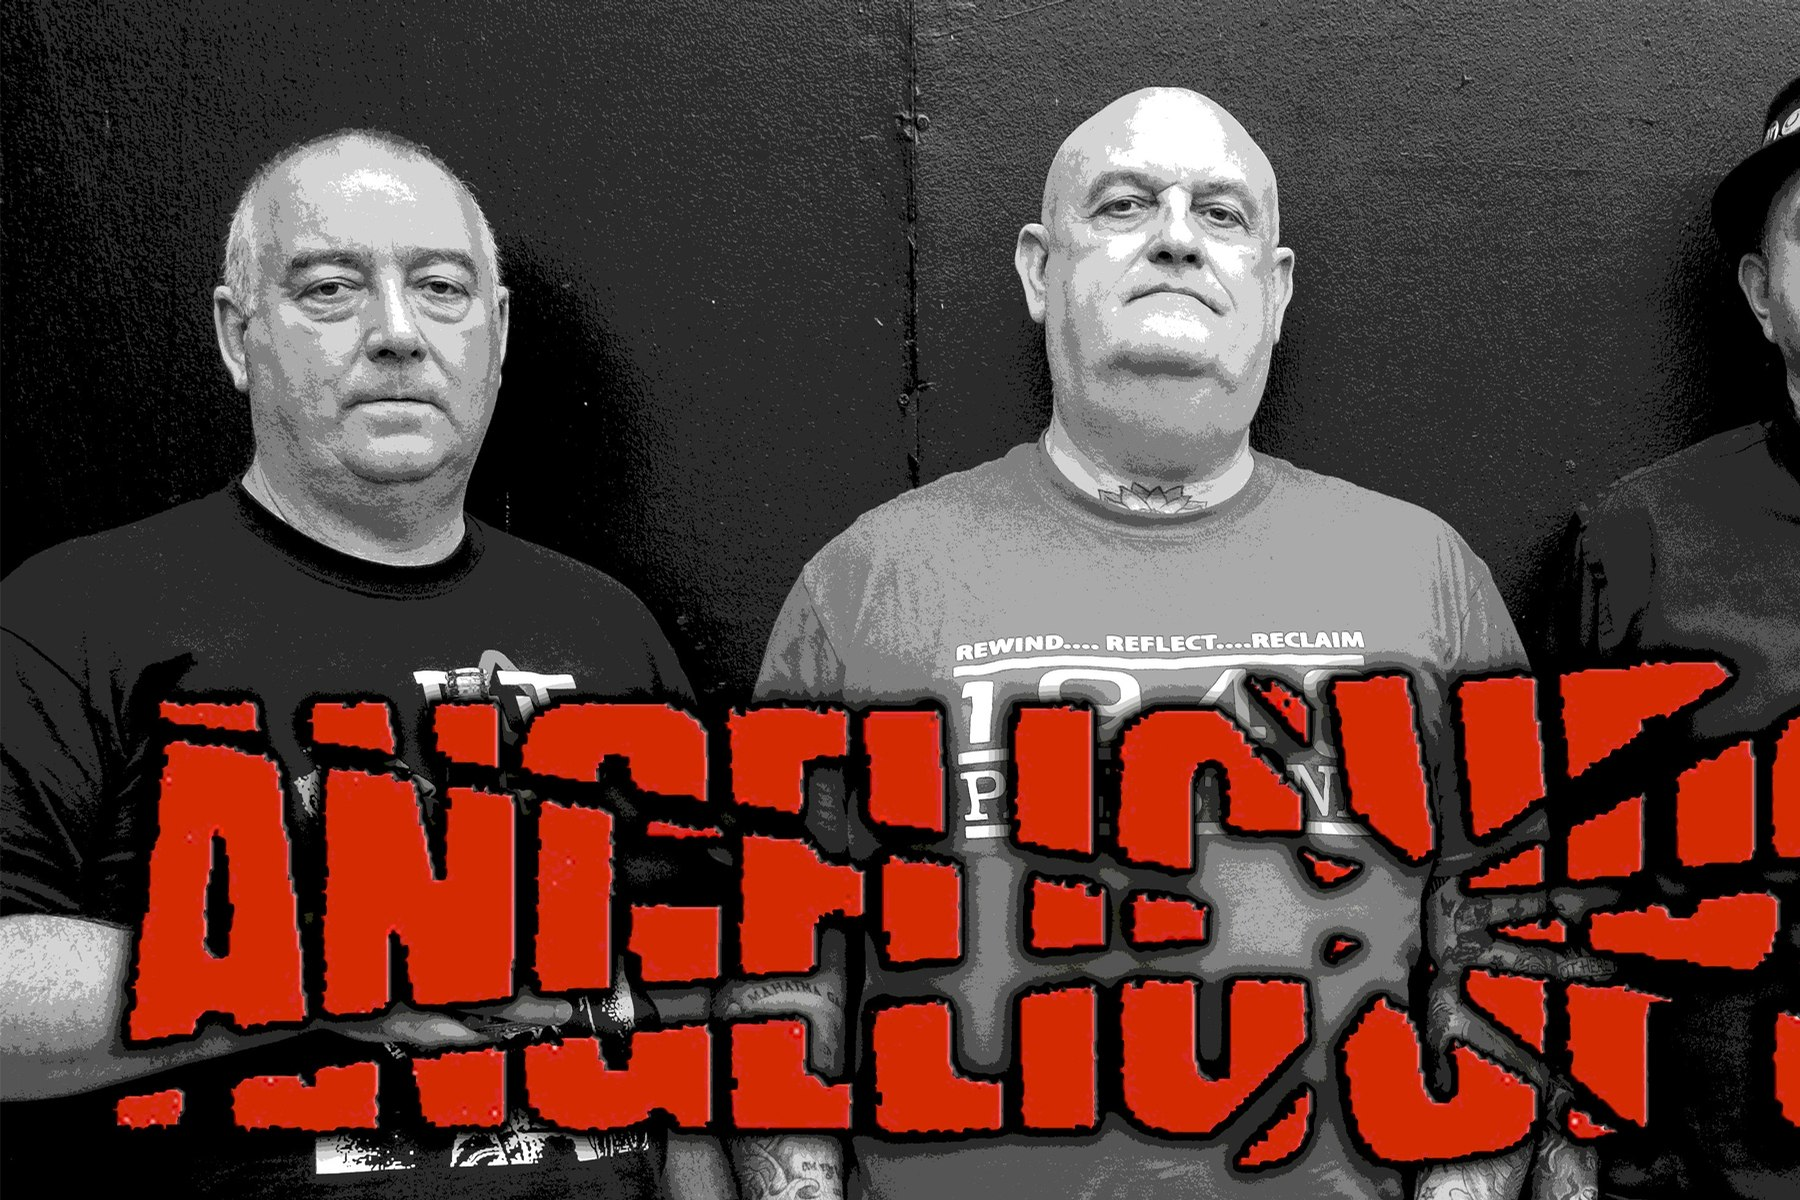 Angelic Upstarts Tour